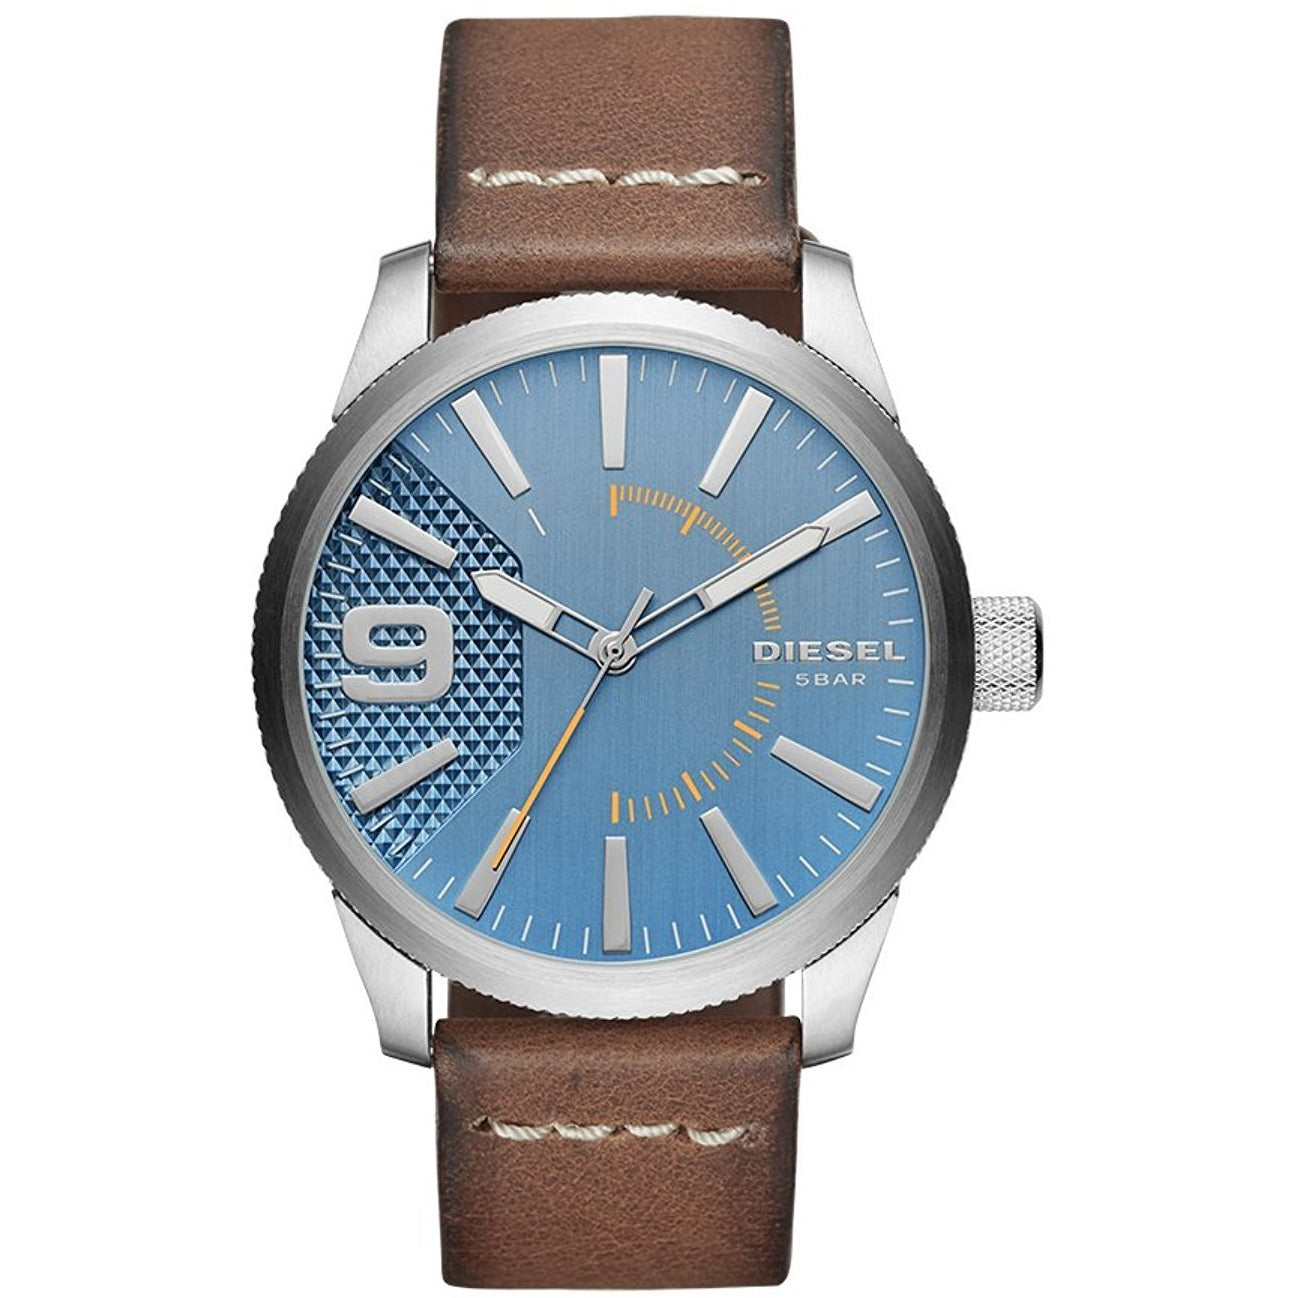 Diesel Casual Watch For Men Analog Leather - DZ1804